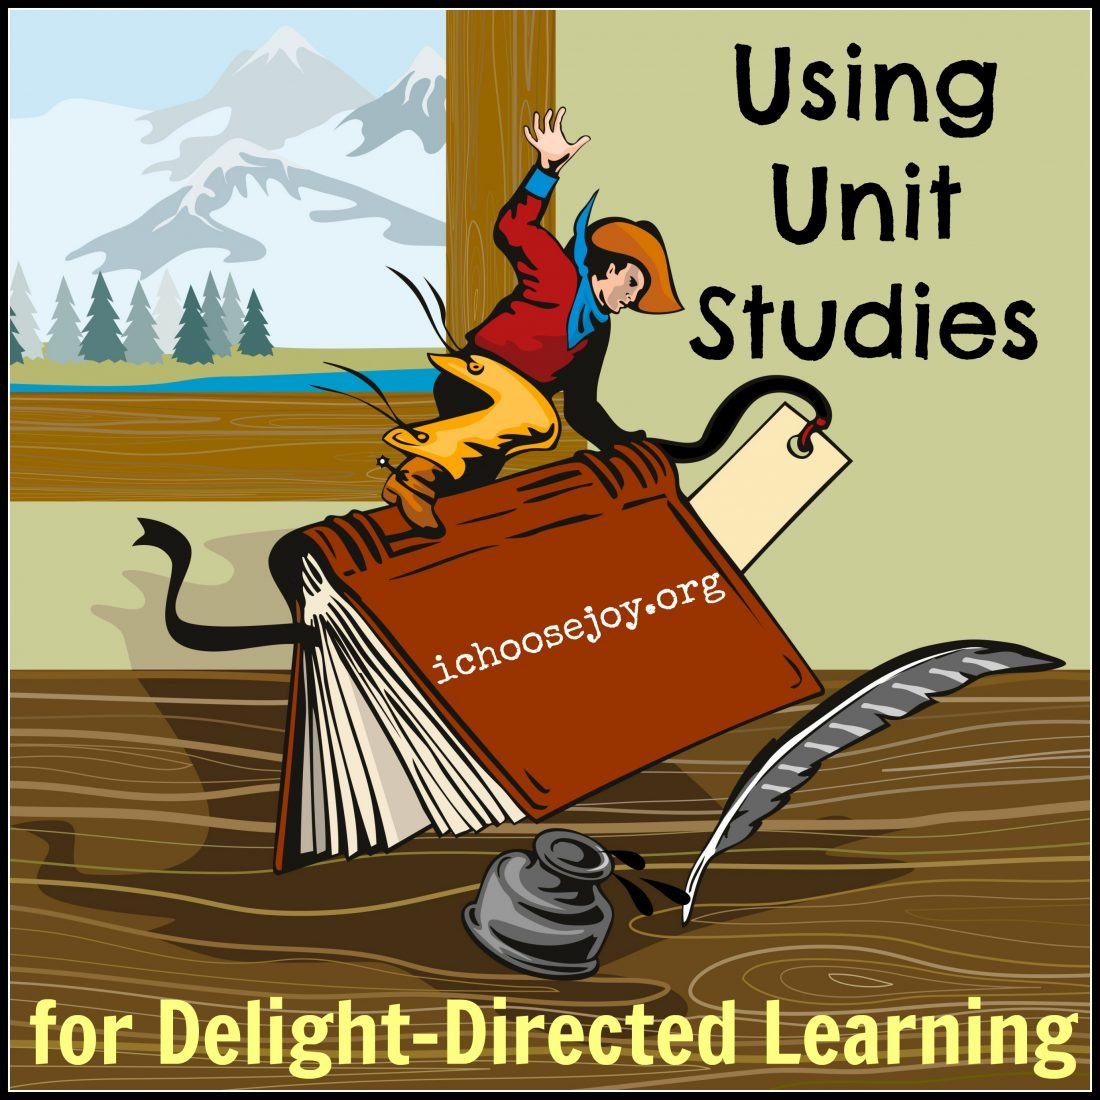 Using Unit Studies for Delight-Directed Learning